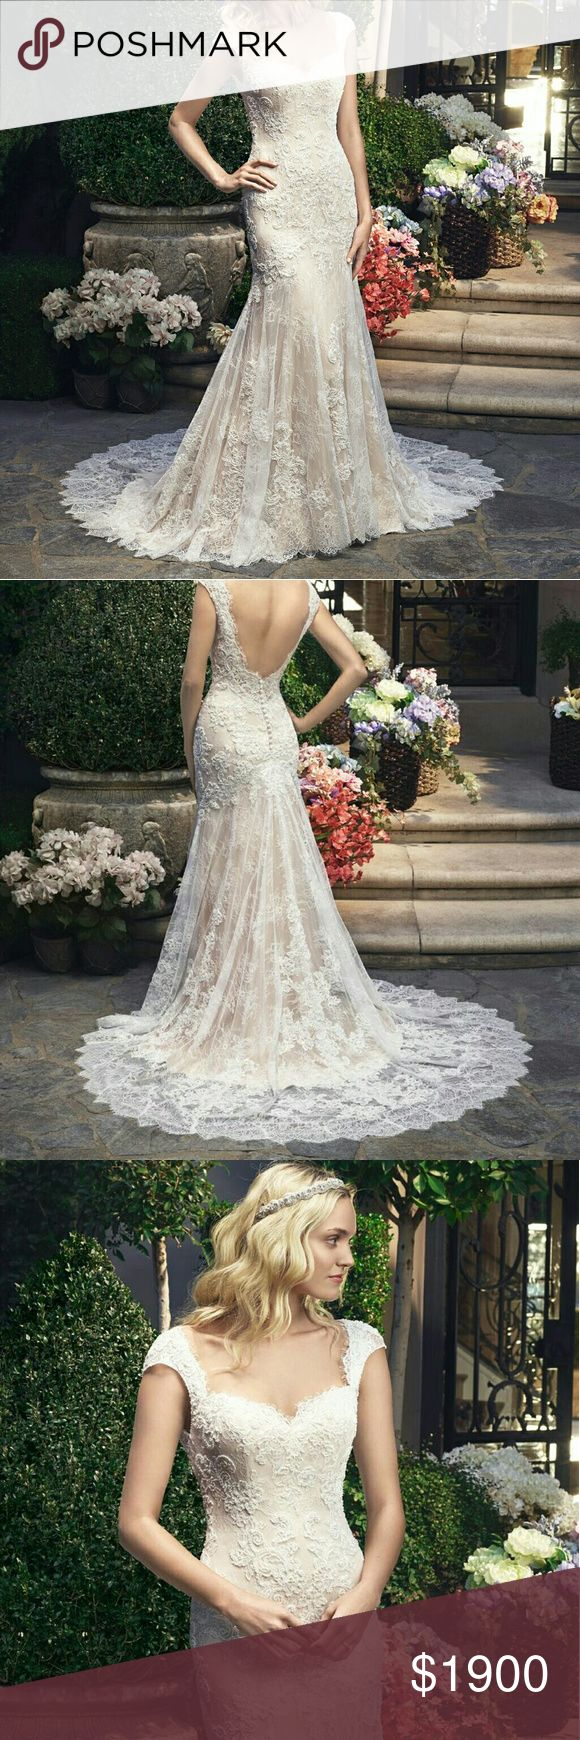 Wedding Dress Casablanca #2215 NEW Wedding Dress Casablanca Dresses Wedding